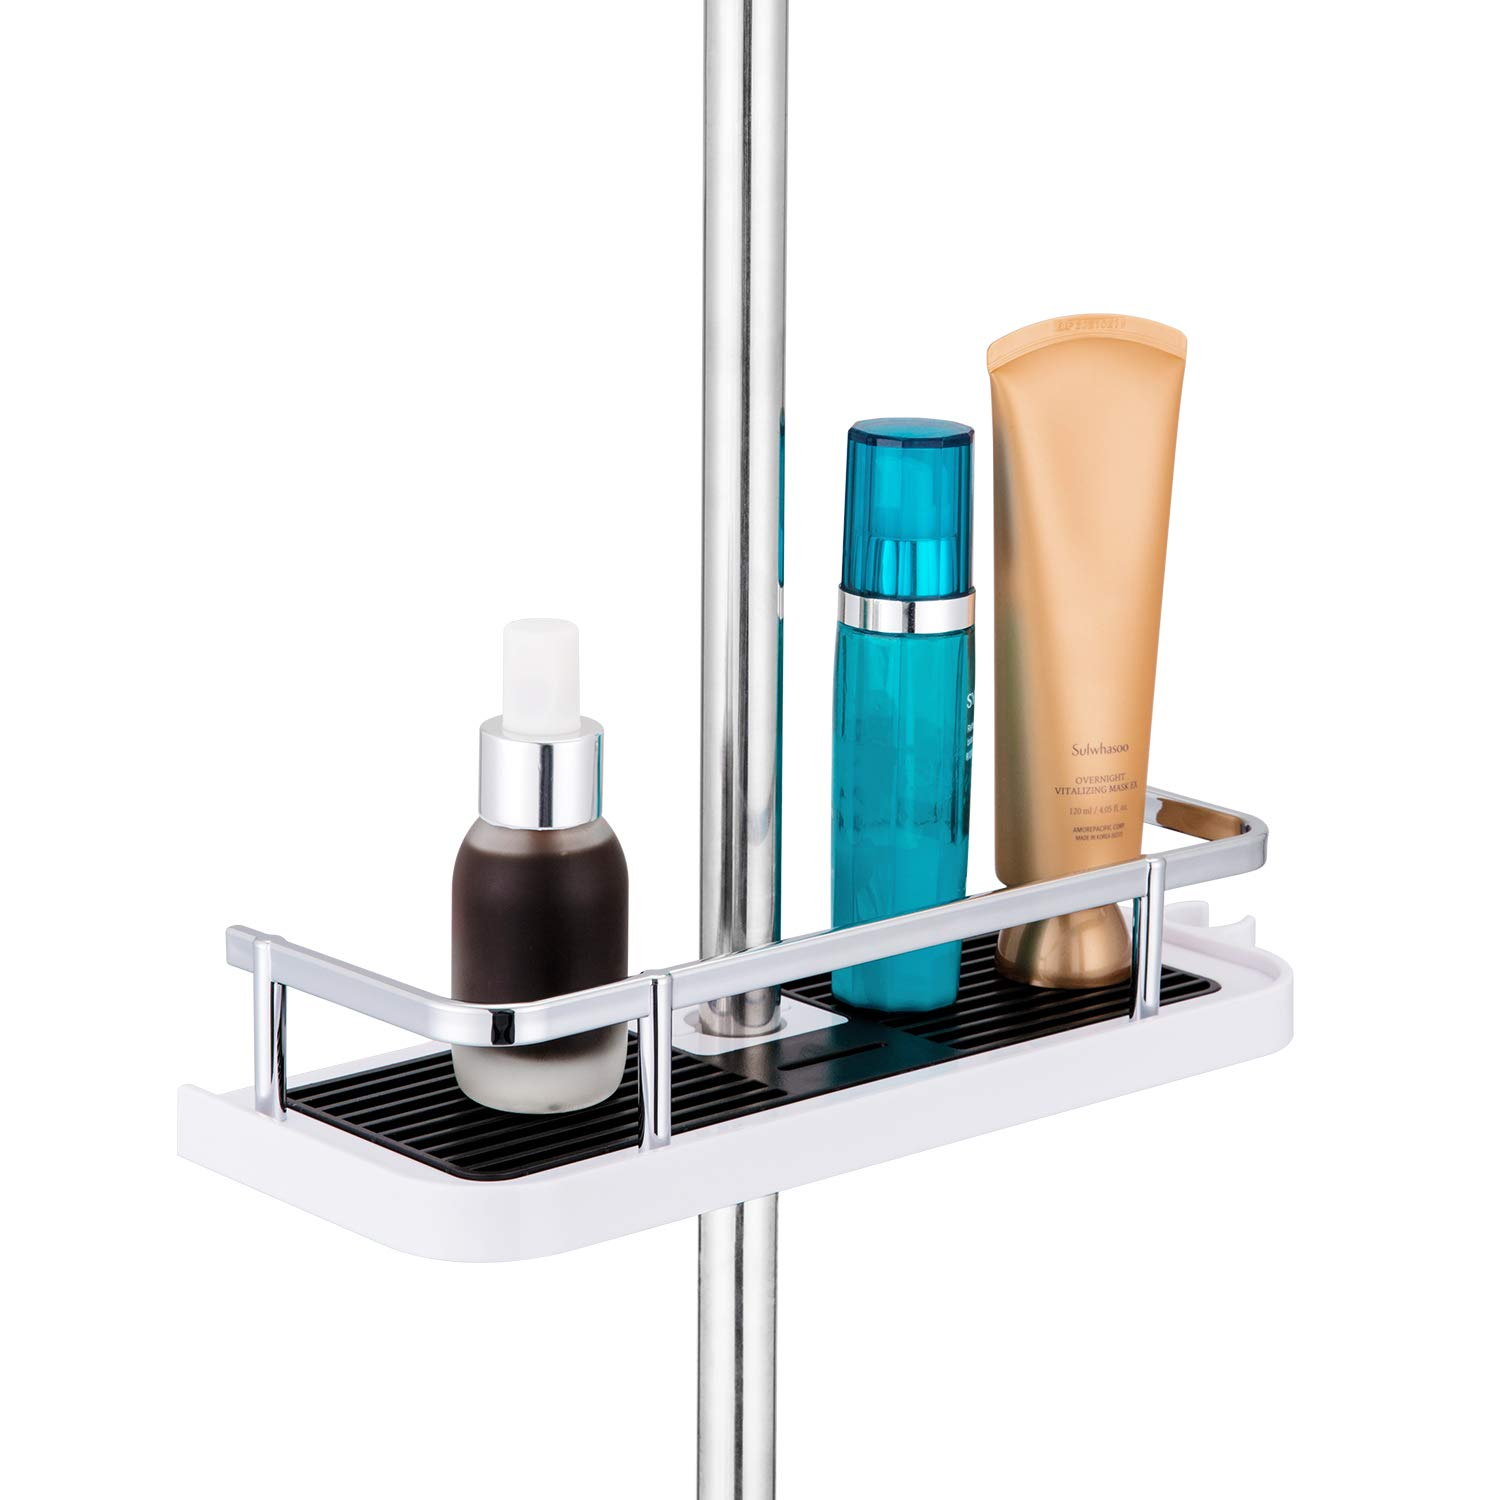 Bathroom Shower Shelf 25mm Rail Hanging Shower Rack,Space Aluminum Shower Caddy Shelf Rack Organizer with Rail 2 Hooks Holder Stand for Soap Shampoo Conditioner,NO Drilling Wall Mounted-Suit 19mm